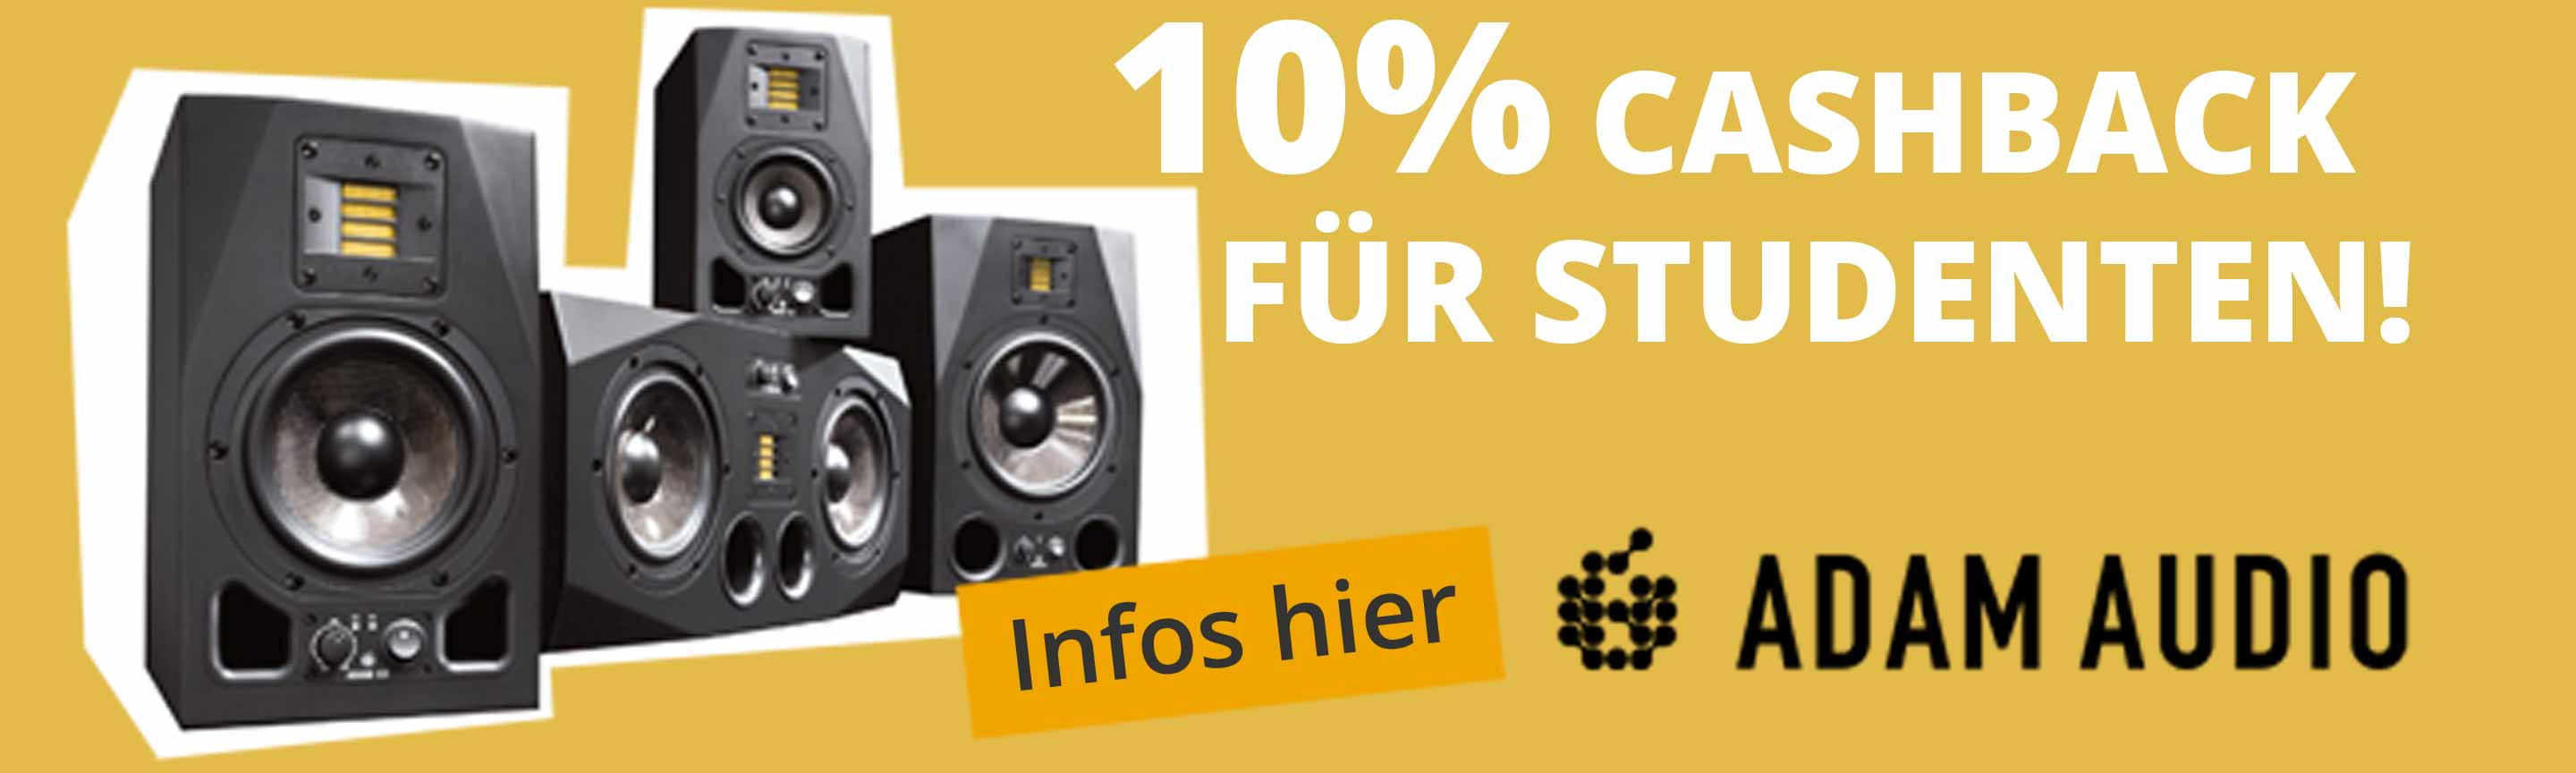 Adam Audio Studenten-Cashback